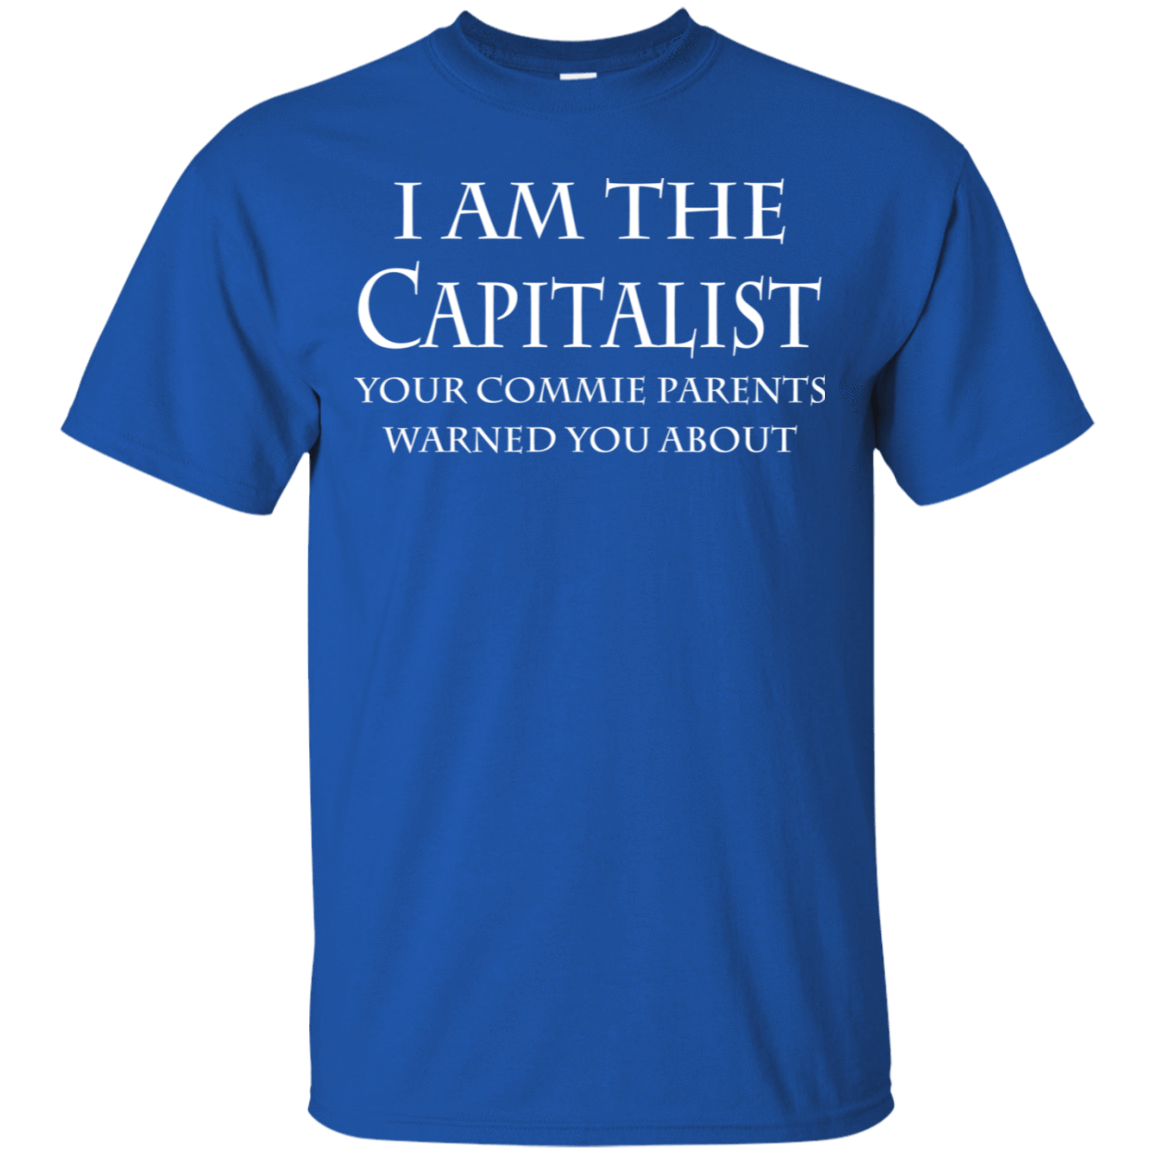 I Am The Capitalist Your Commie Parents Warned You About 22-110-74170718-249 - Tee Ript